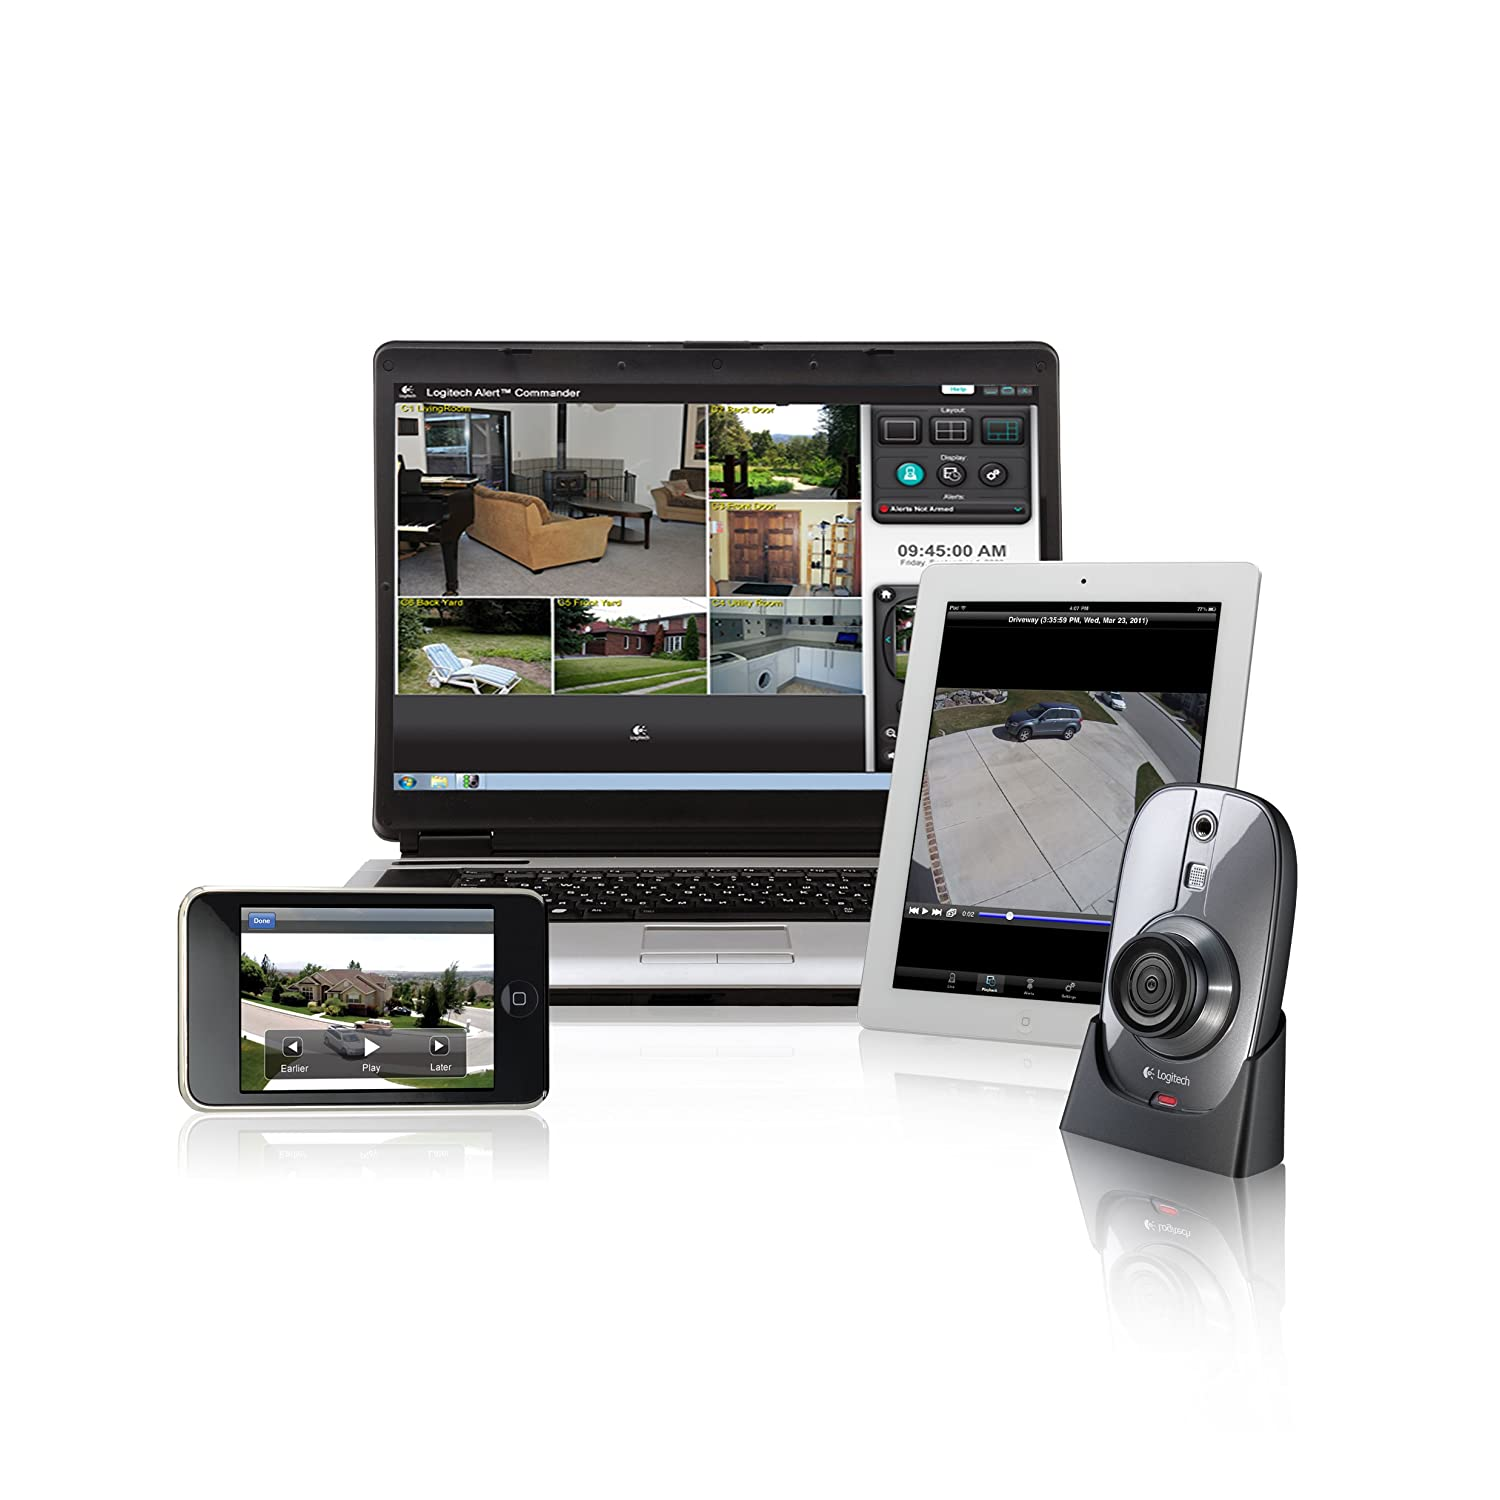 Logitech Alert, Monitoring your home with Sensr.net